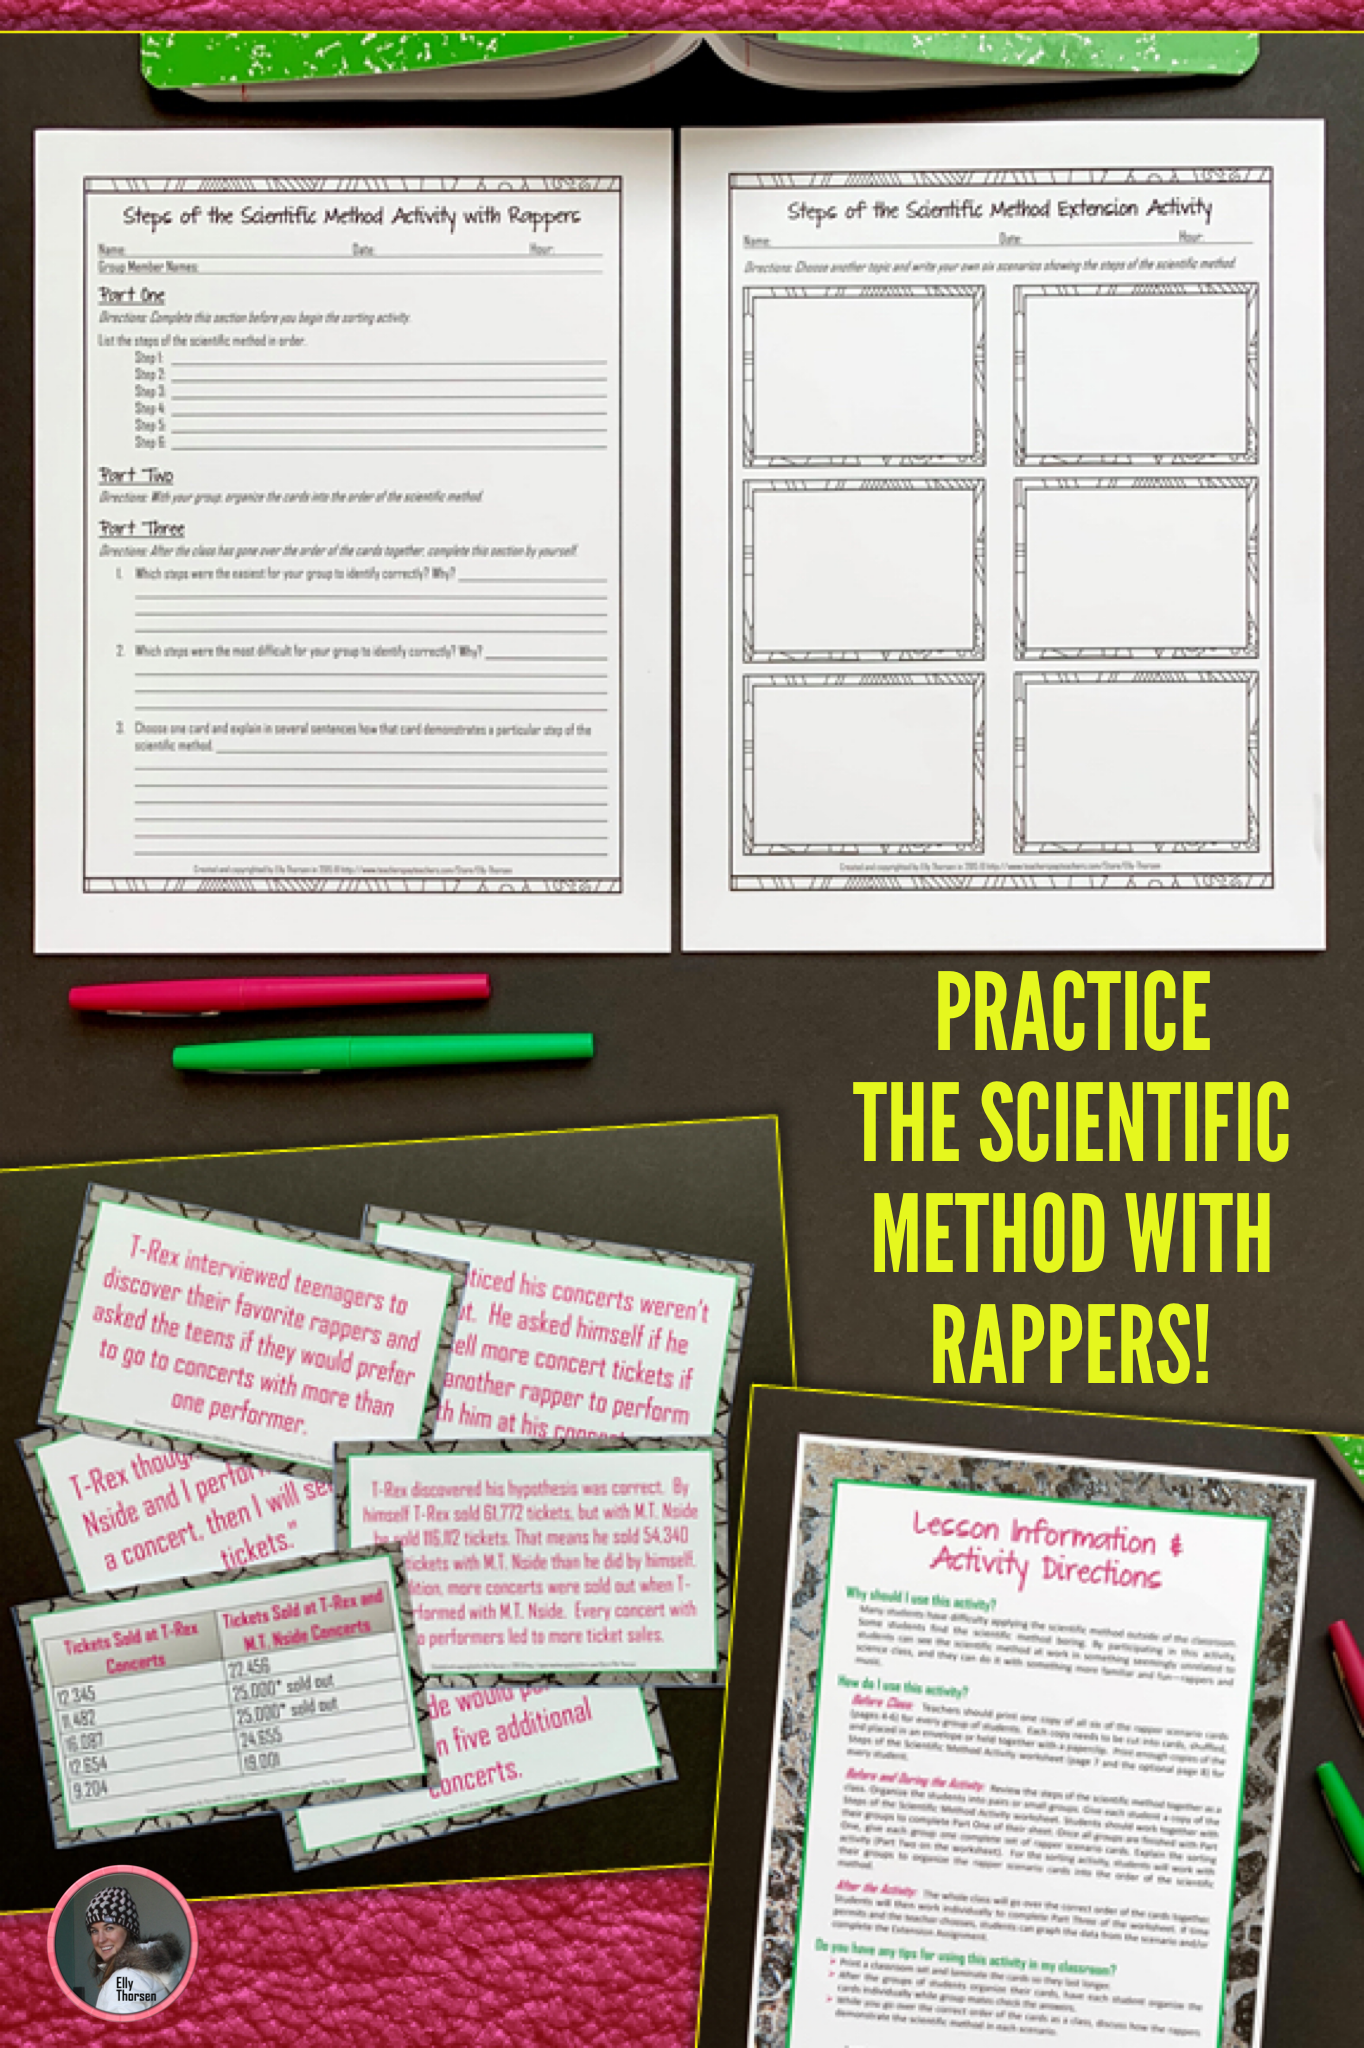 Steps Of The Scientific Method Activity With Rappers For Middle School Science Scientific Method Scientific Method Activities Middle School Science